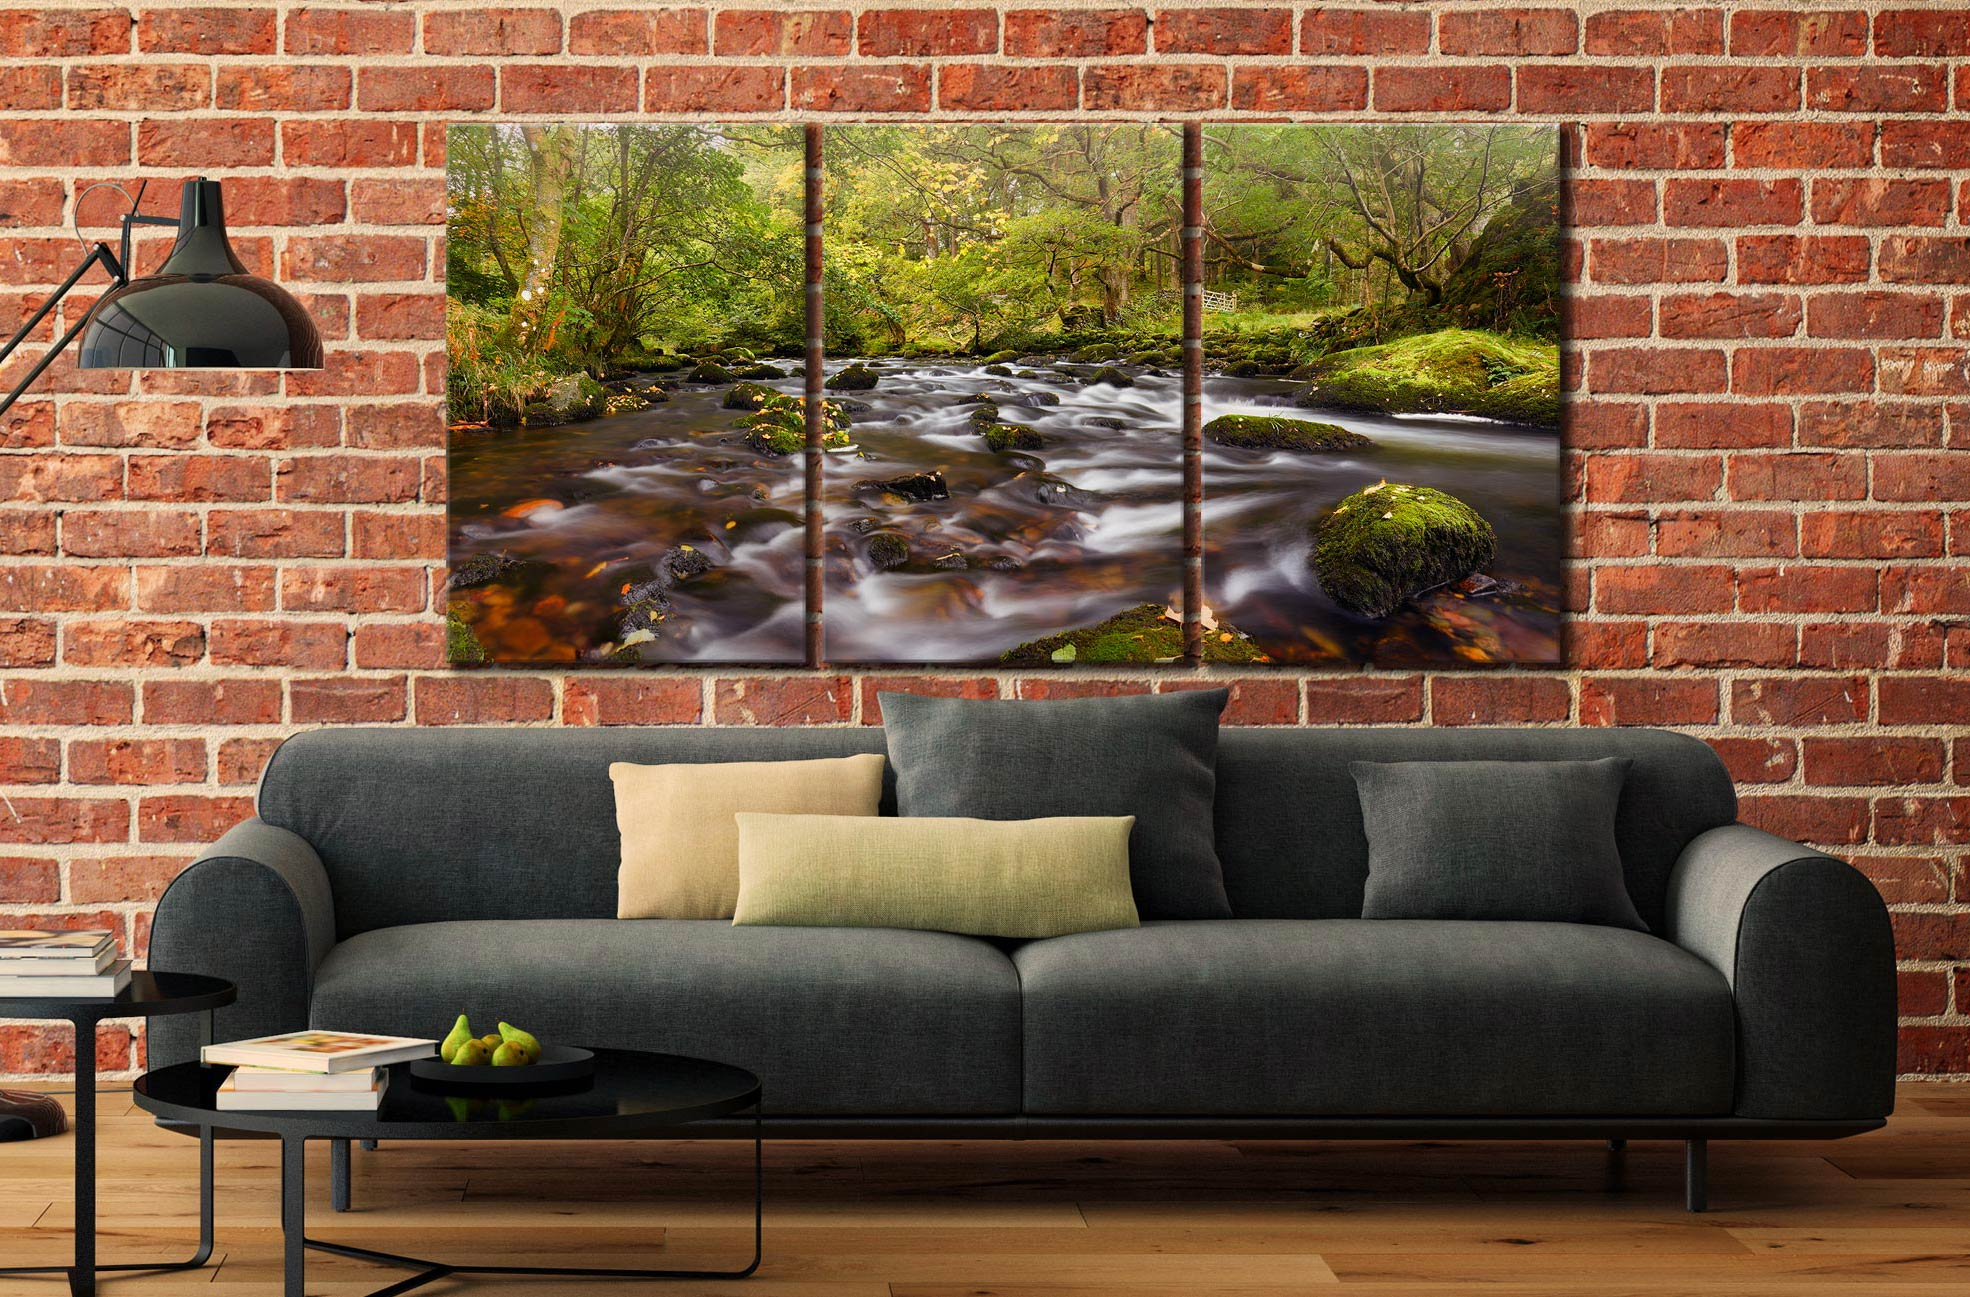 Start of Autumn River Rothay - 3 Panel Canvas on Wall